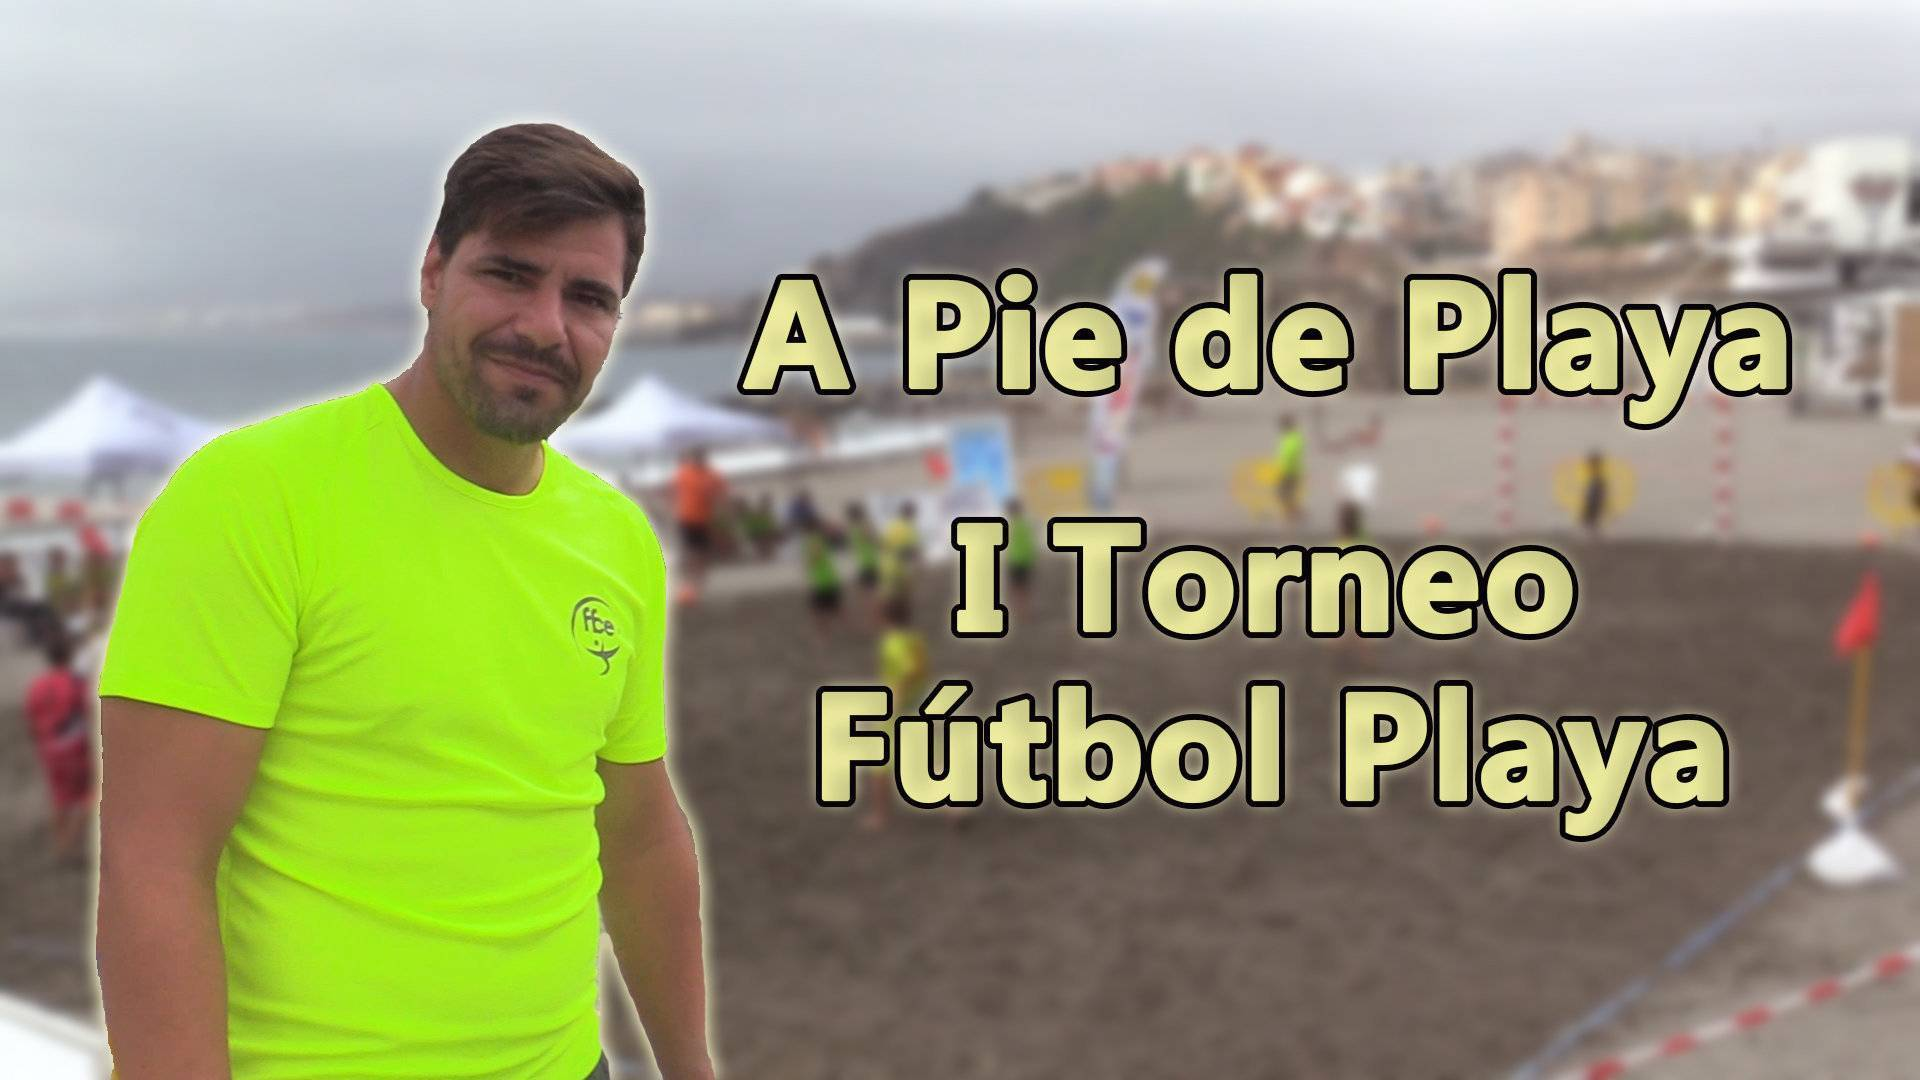 A Pie de Playa - I Torneo Fútbol Playa